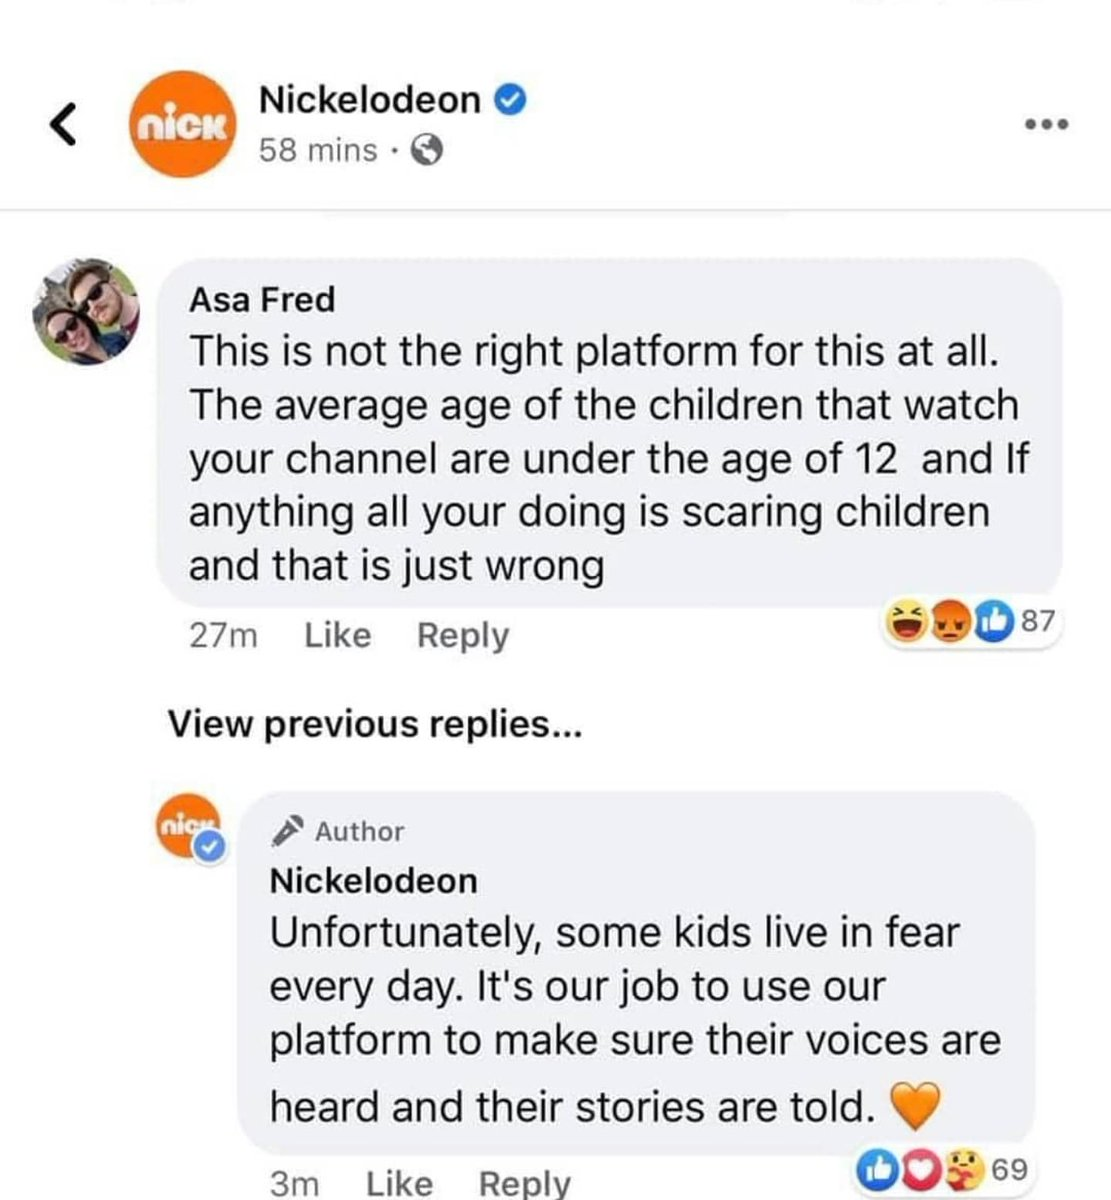 Nickelodeon said what tf they said! https://t.co/XV71zovic1